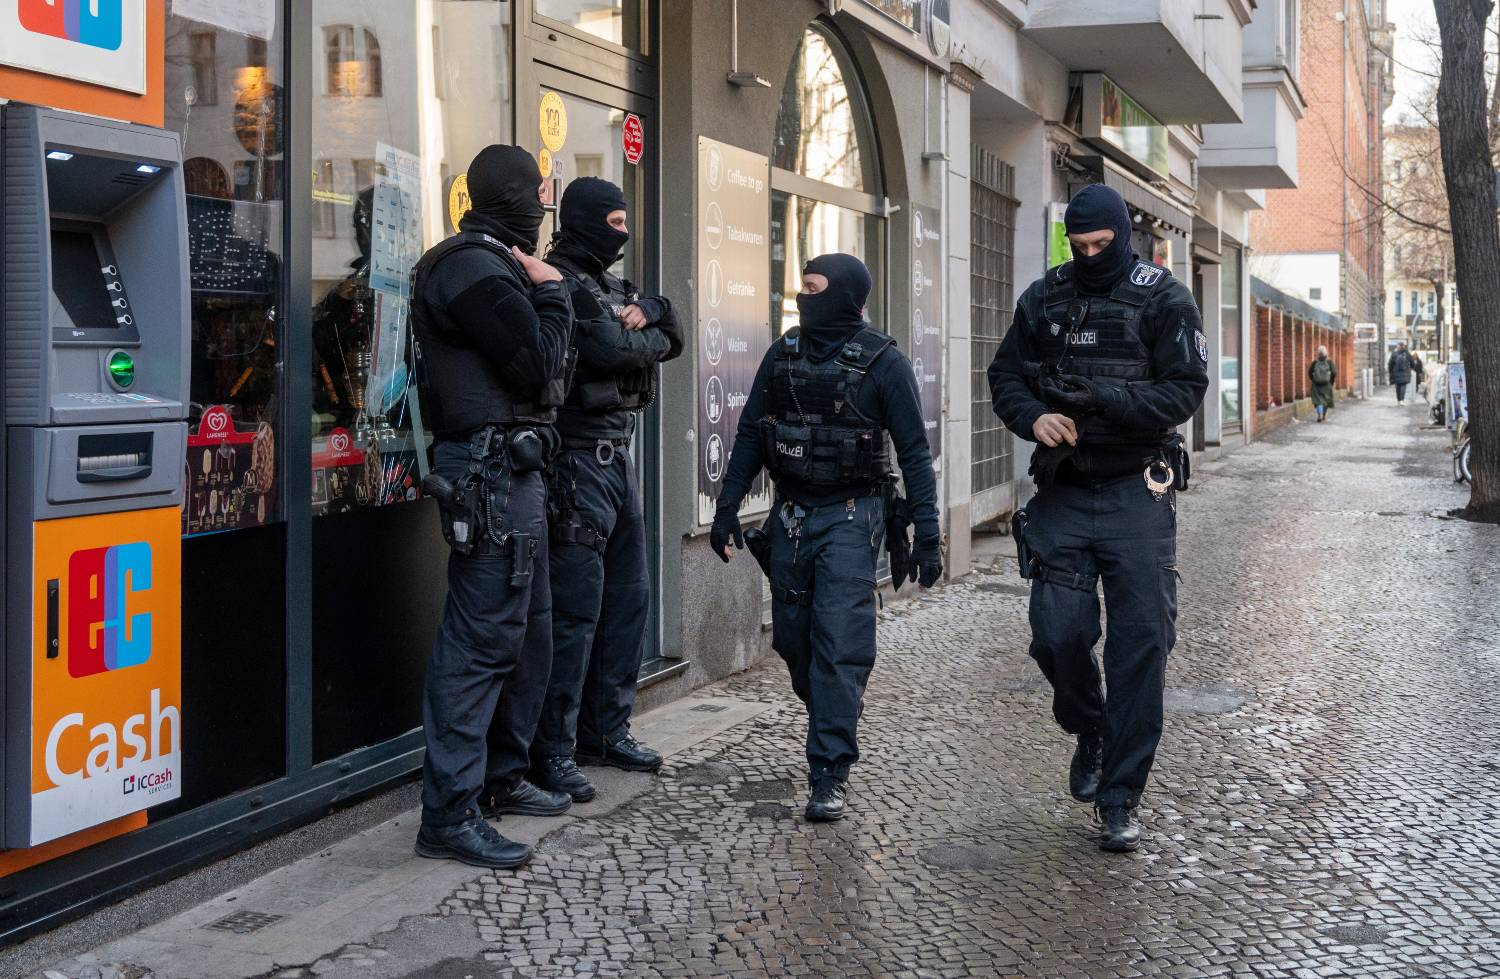 Hundreds of Berlin police carry out raids and arrests on criminal gangs